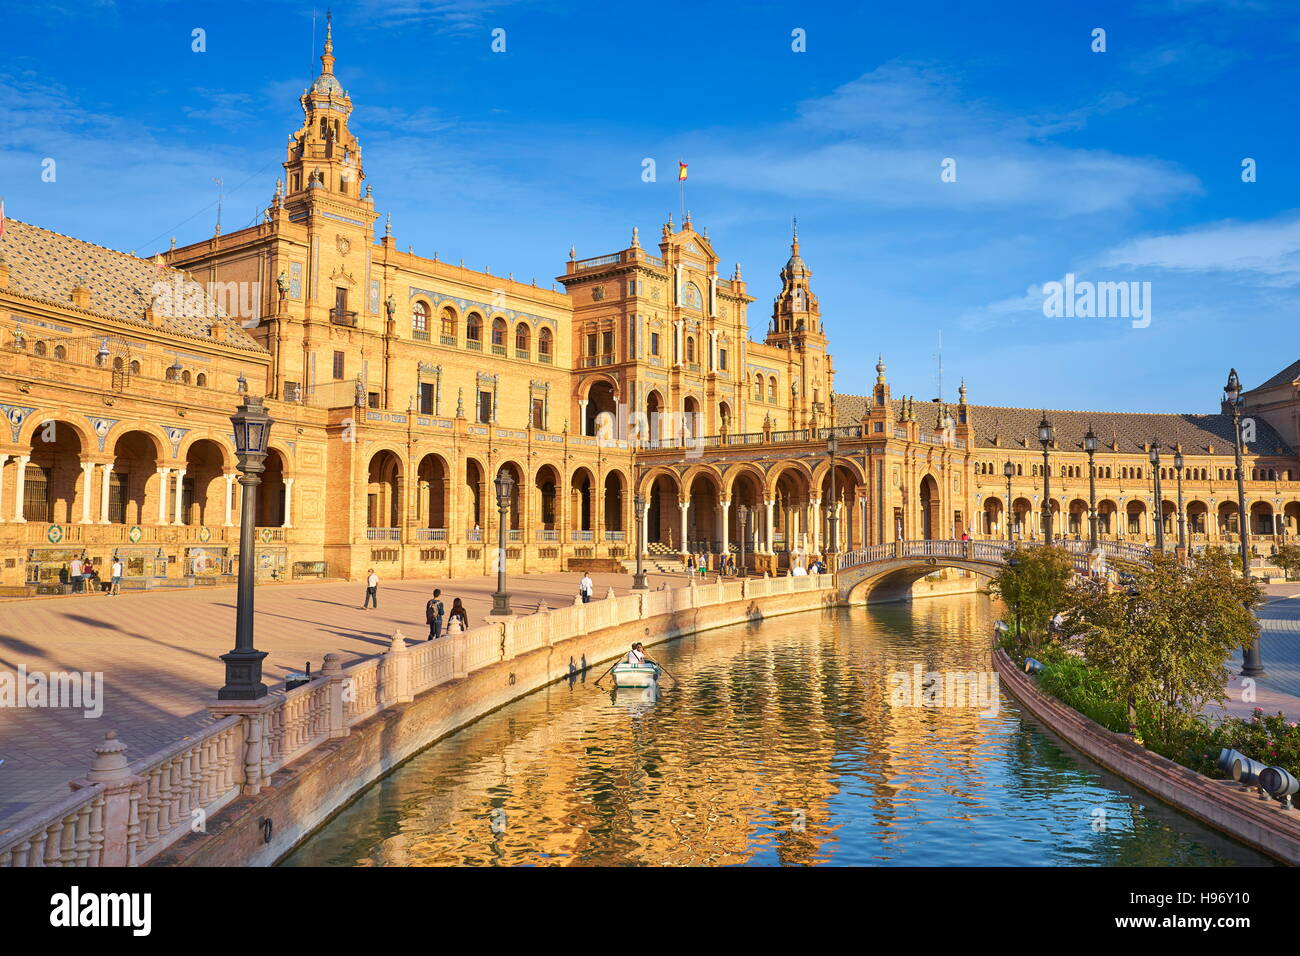 Plaza de Espana, boat on the canal, Seville, Spain - Stock Image